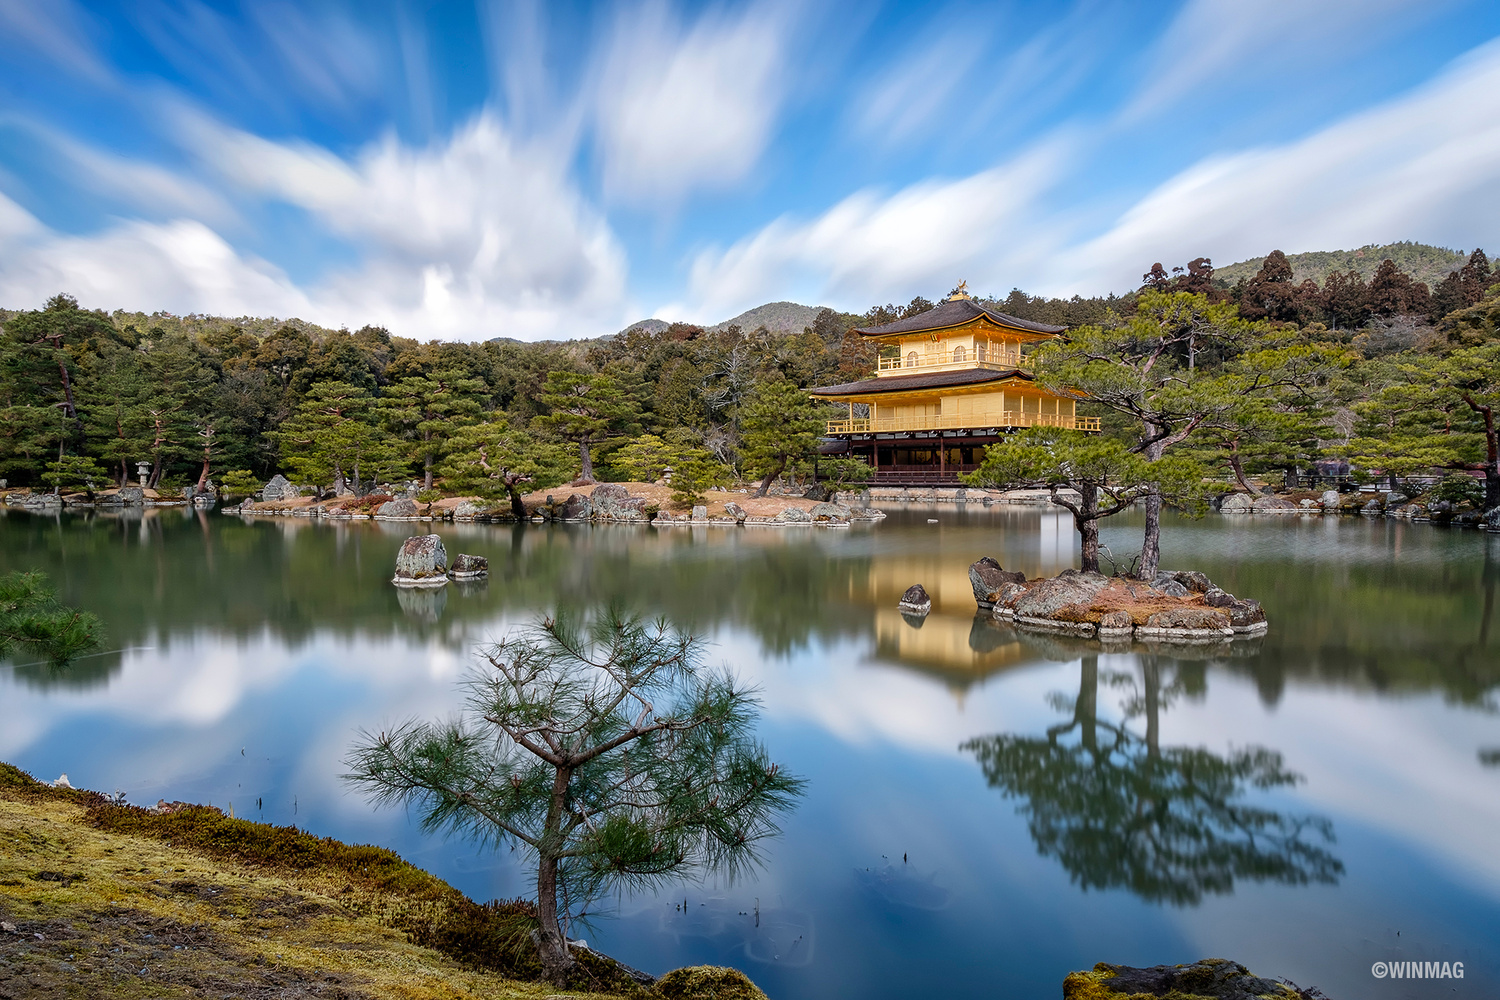 The Golden Pavilion by Sherwin Magsino